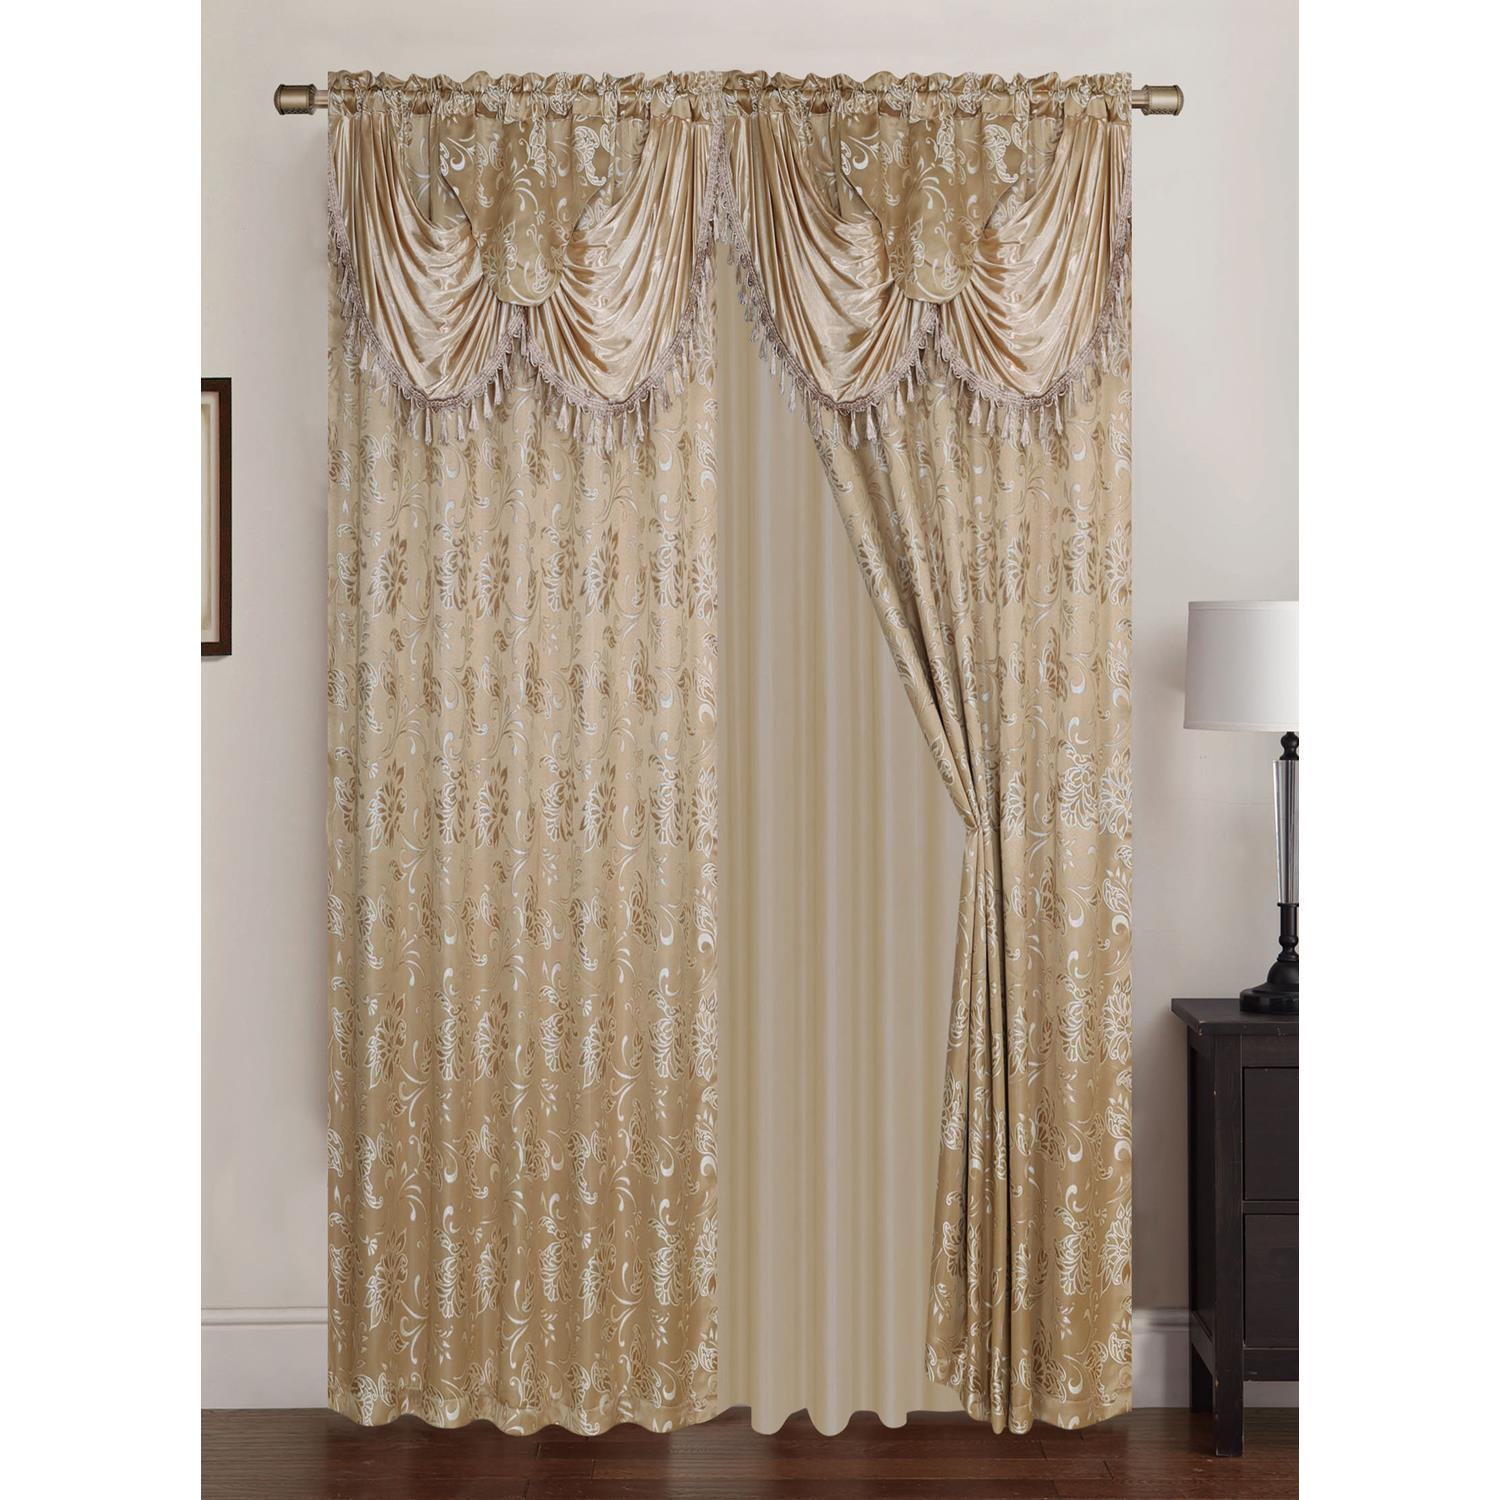 Clayton Jacquard 108 x 84 in. Double Rod Pocket Curtain Panel Pair w/ Attached 18 in. Valance, Taupe (Set of 2)